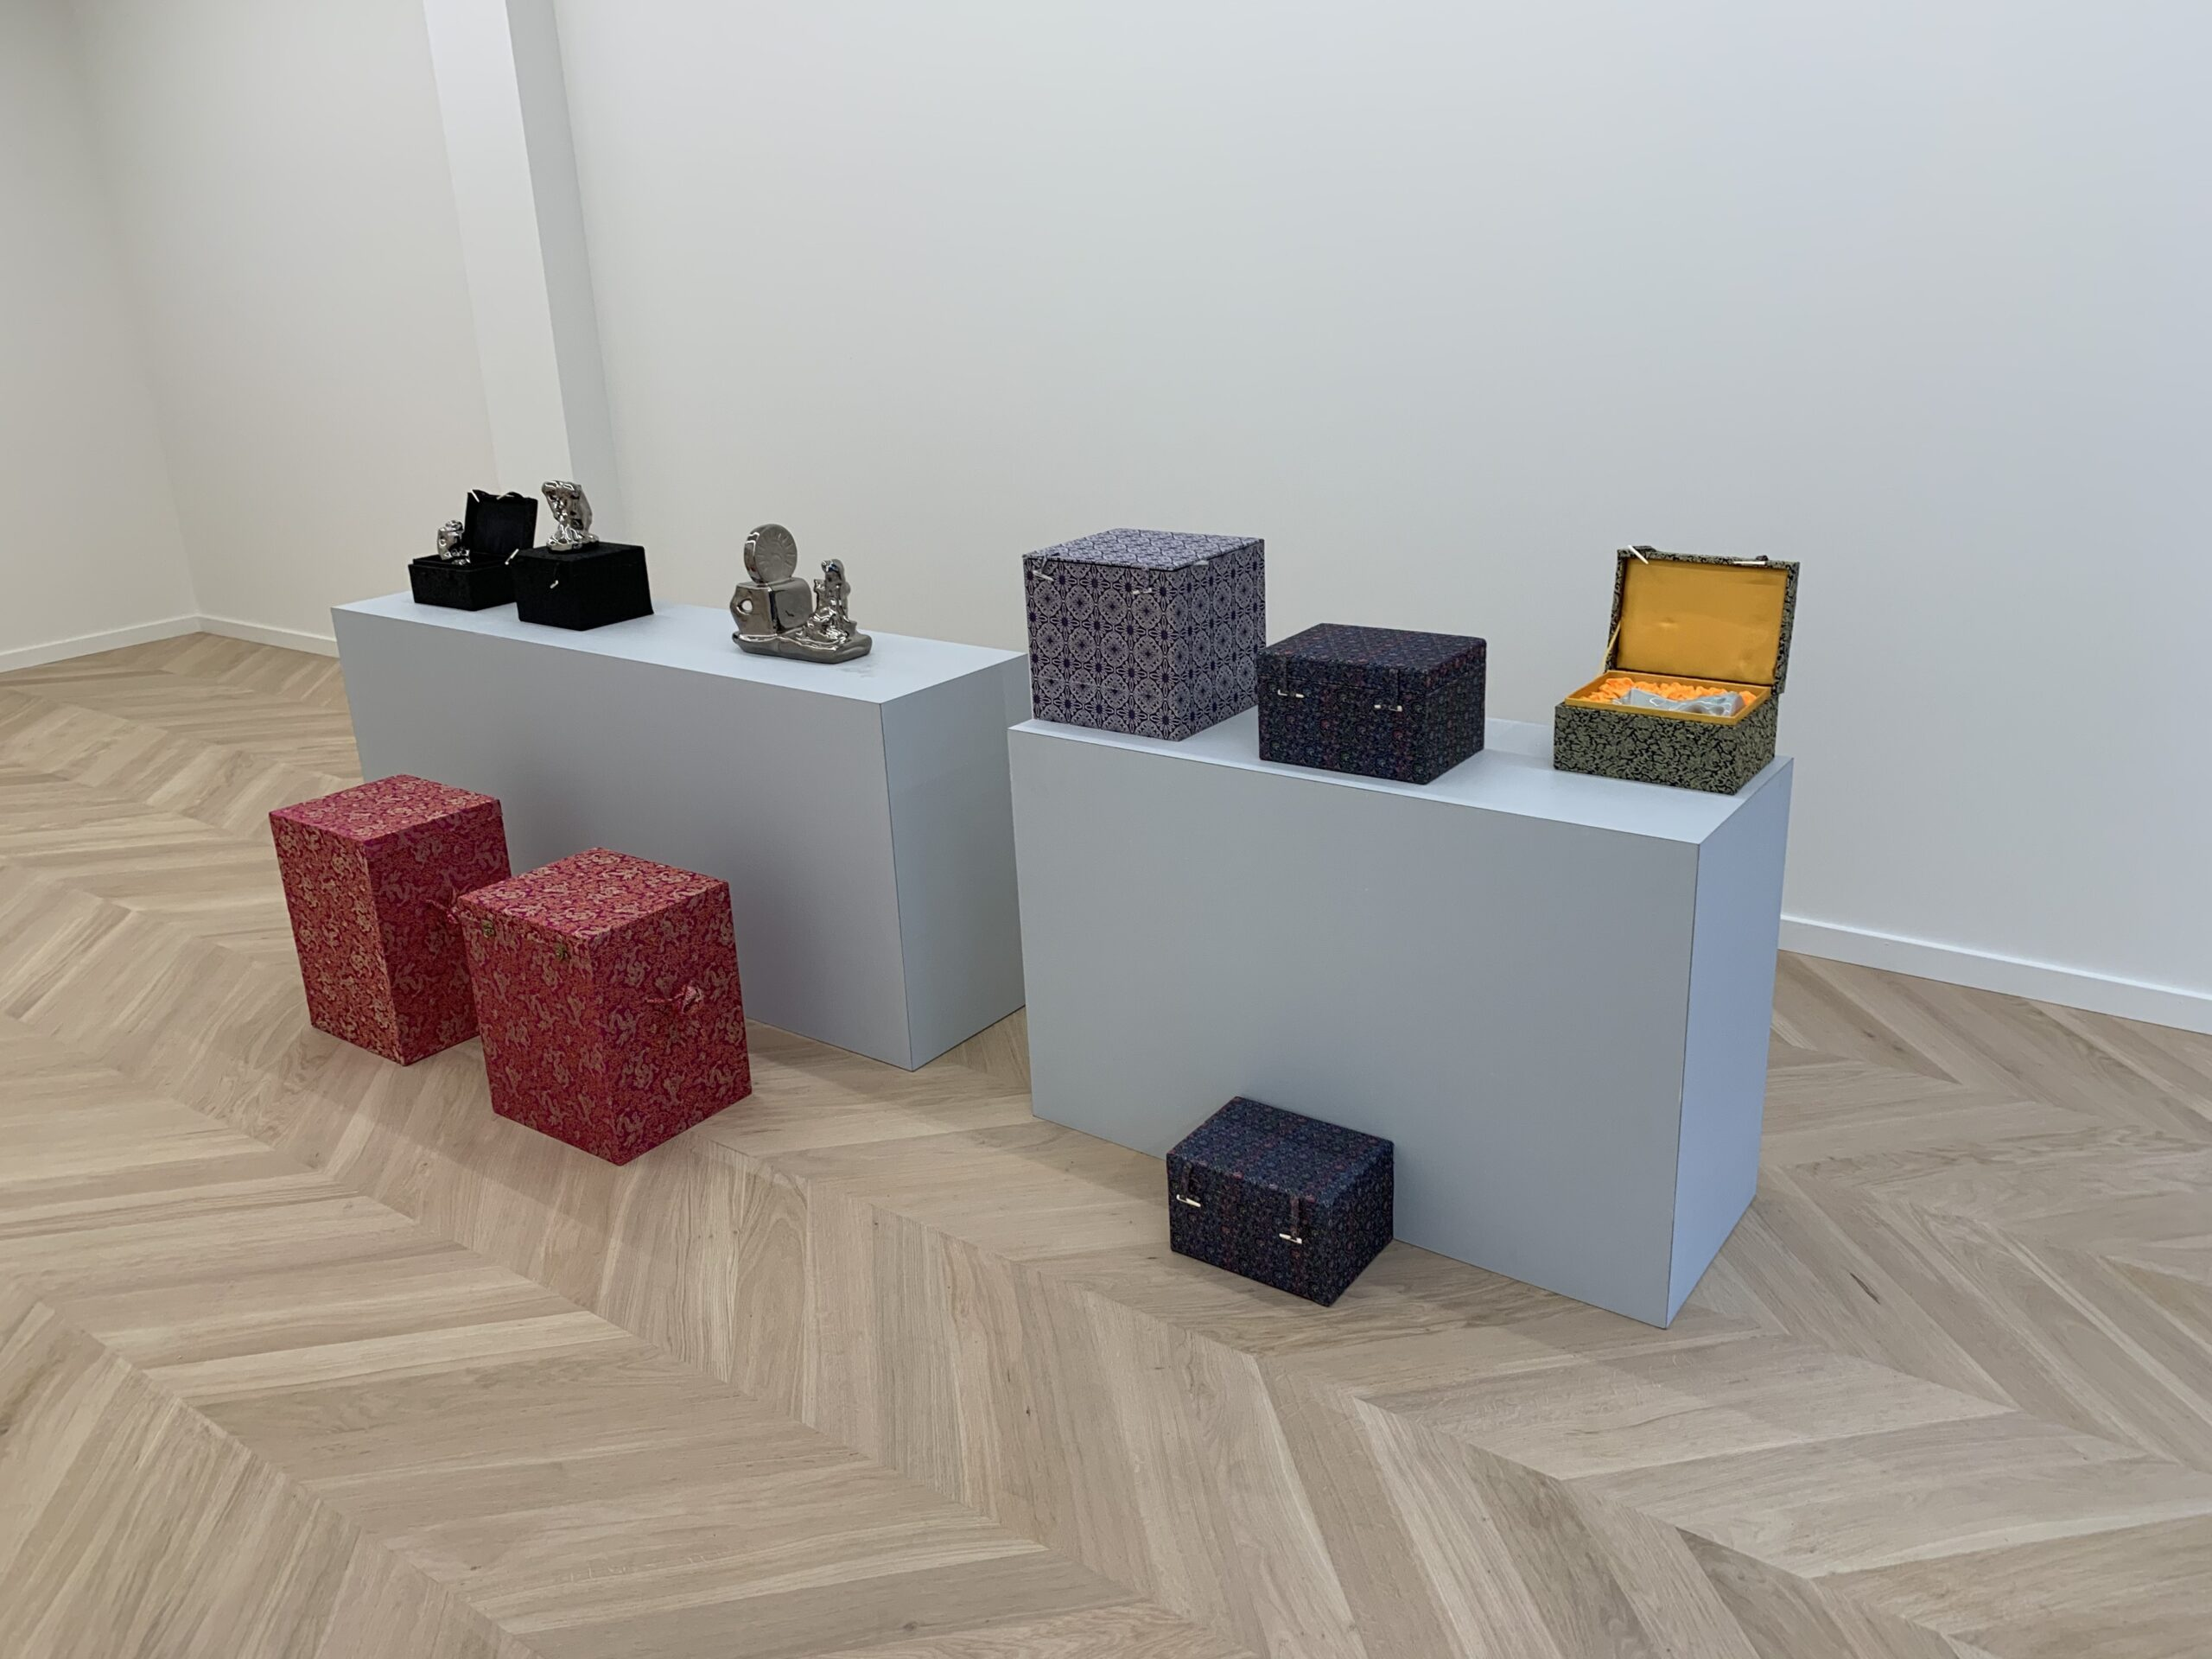 Boxes at Coppejans Gallery